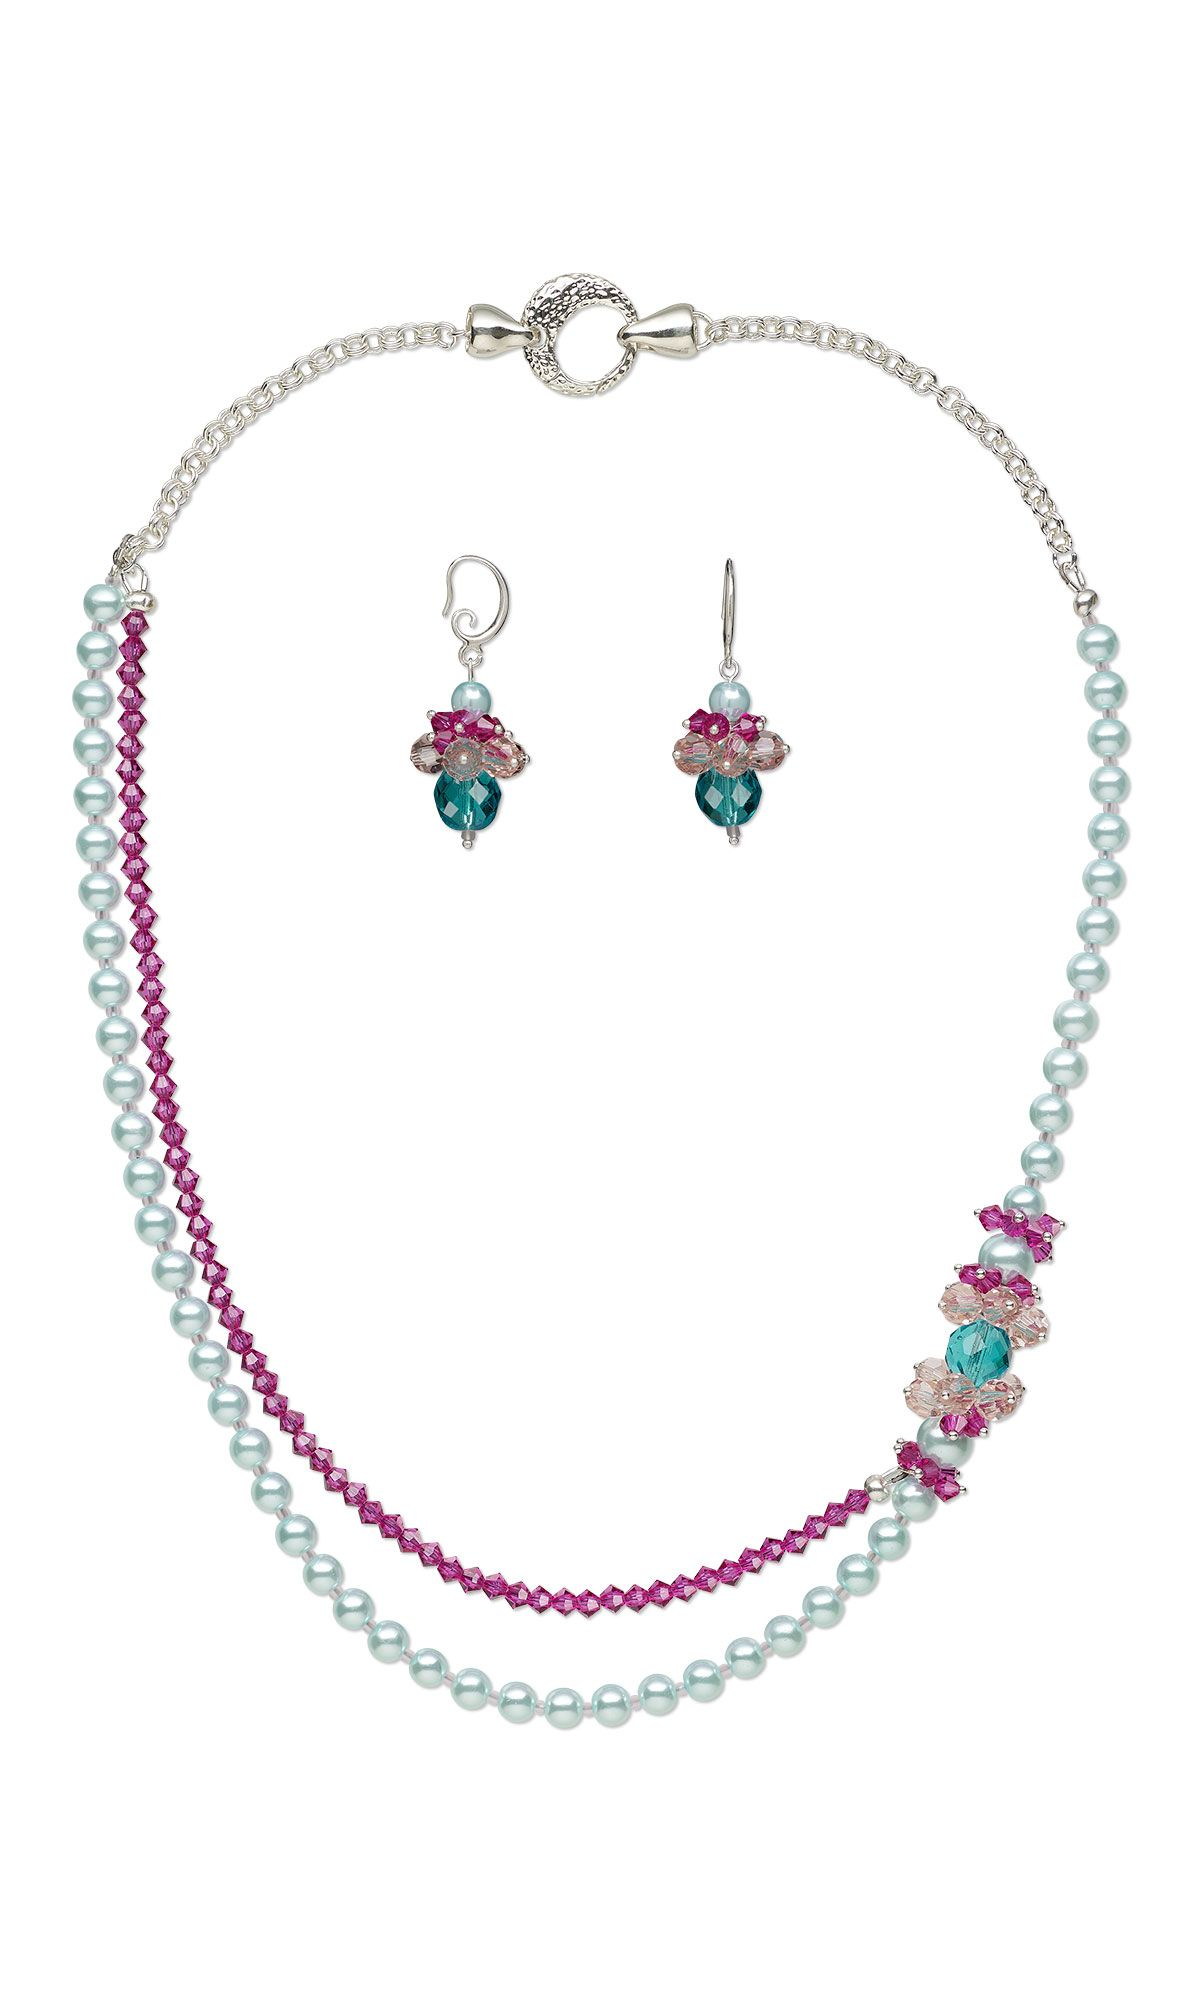 jewelry design double strand necklace and earring set with